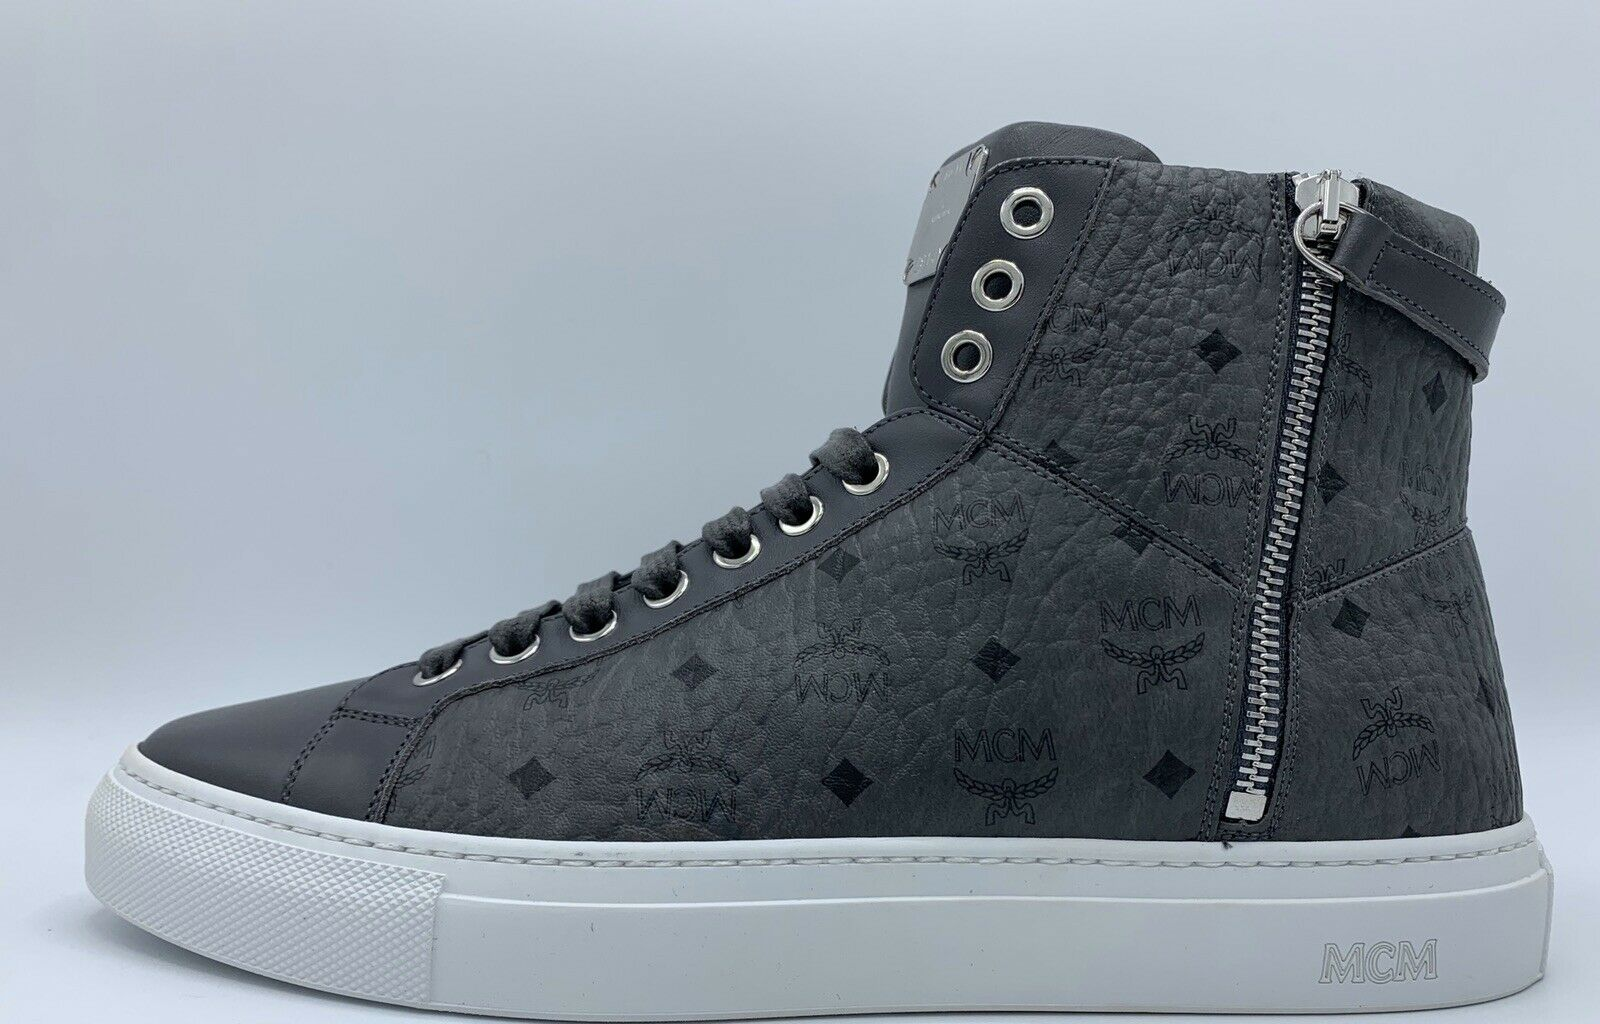 MCM Light Dark Gray High Tops Leather Sneakers size US 10 Made in Italy   MALIBU THRIFT STORE